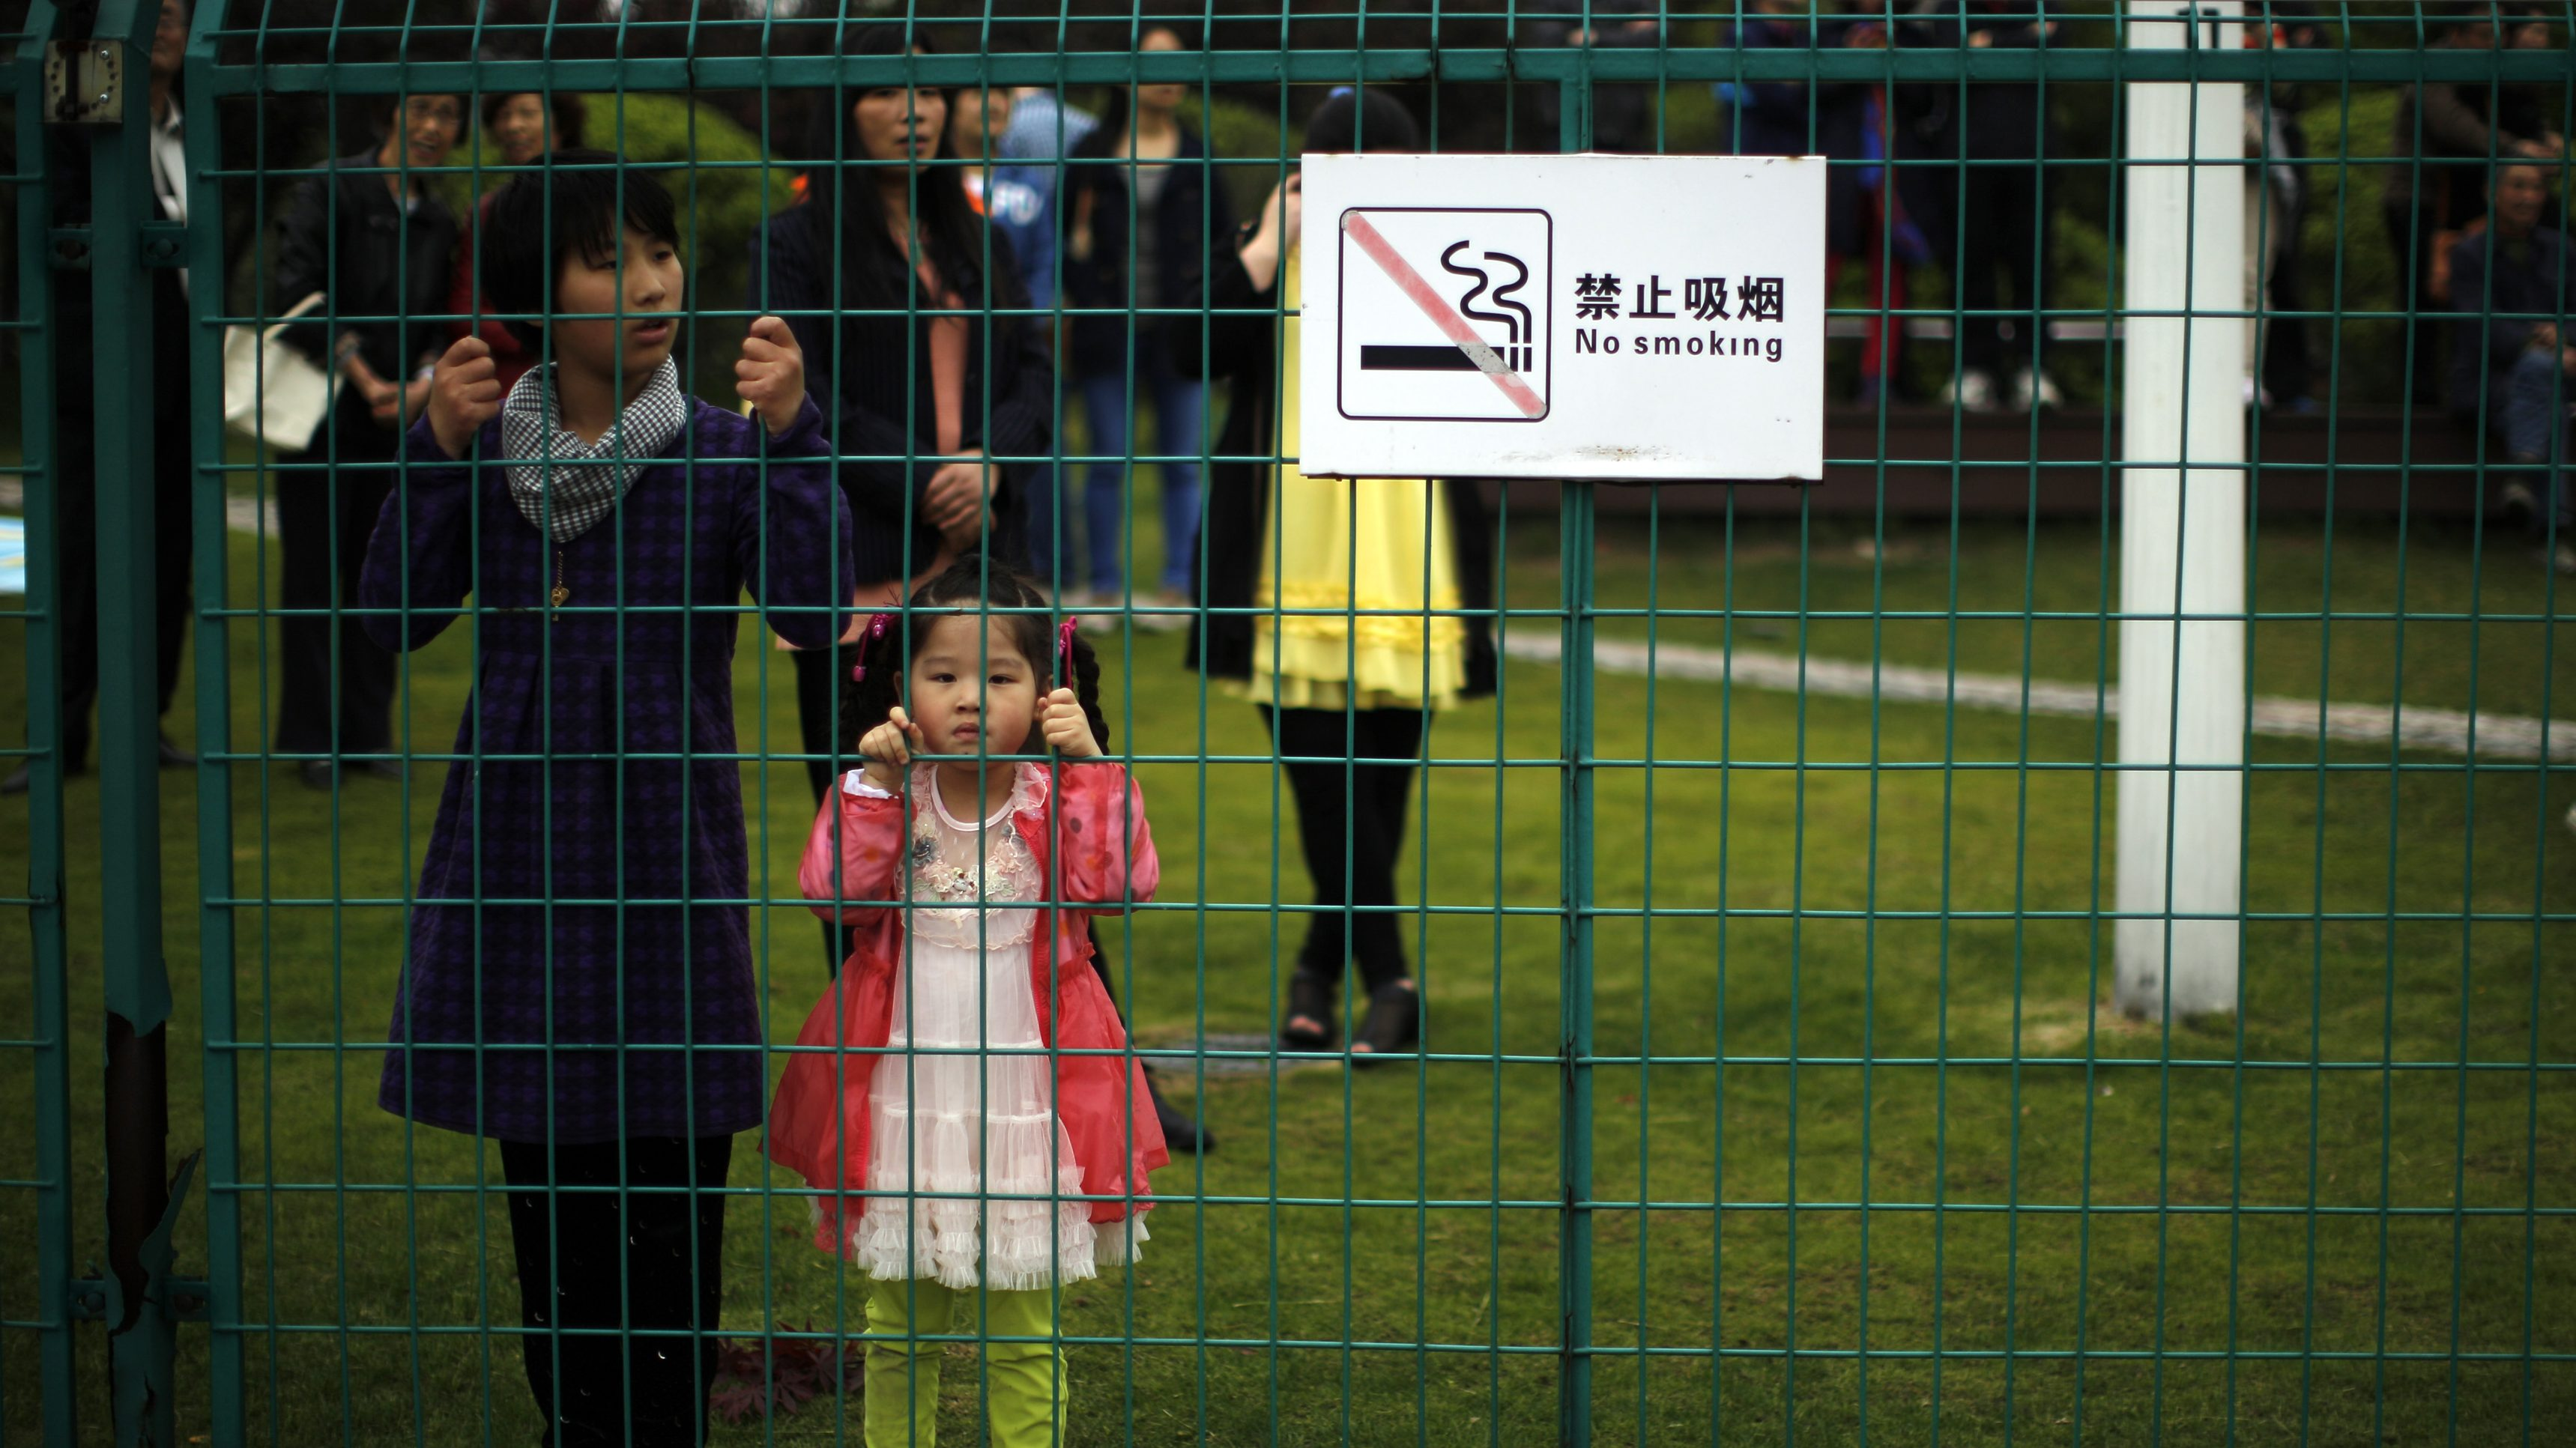 """Girls stand next to a """"No Smoking"""" sign at a park downtown Shanghai April 27, 2014. REUTERS/Carlos Barria (CHINA - Tags: SOCIETY TPX IMAGES OF THE DAY) - RTR3MT8Q"""